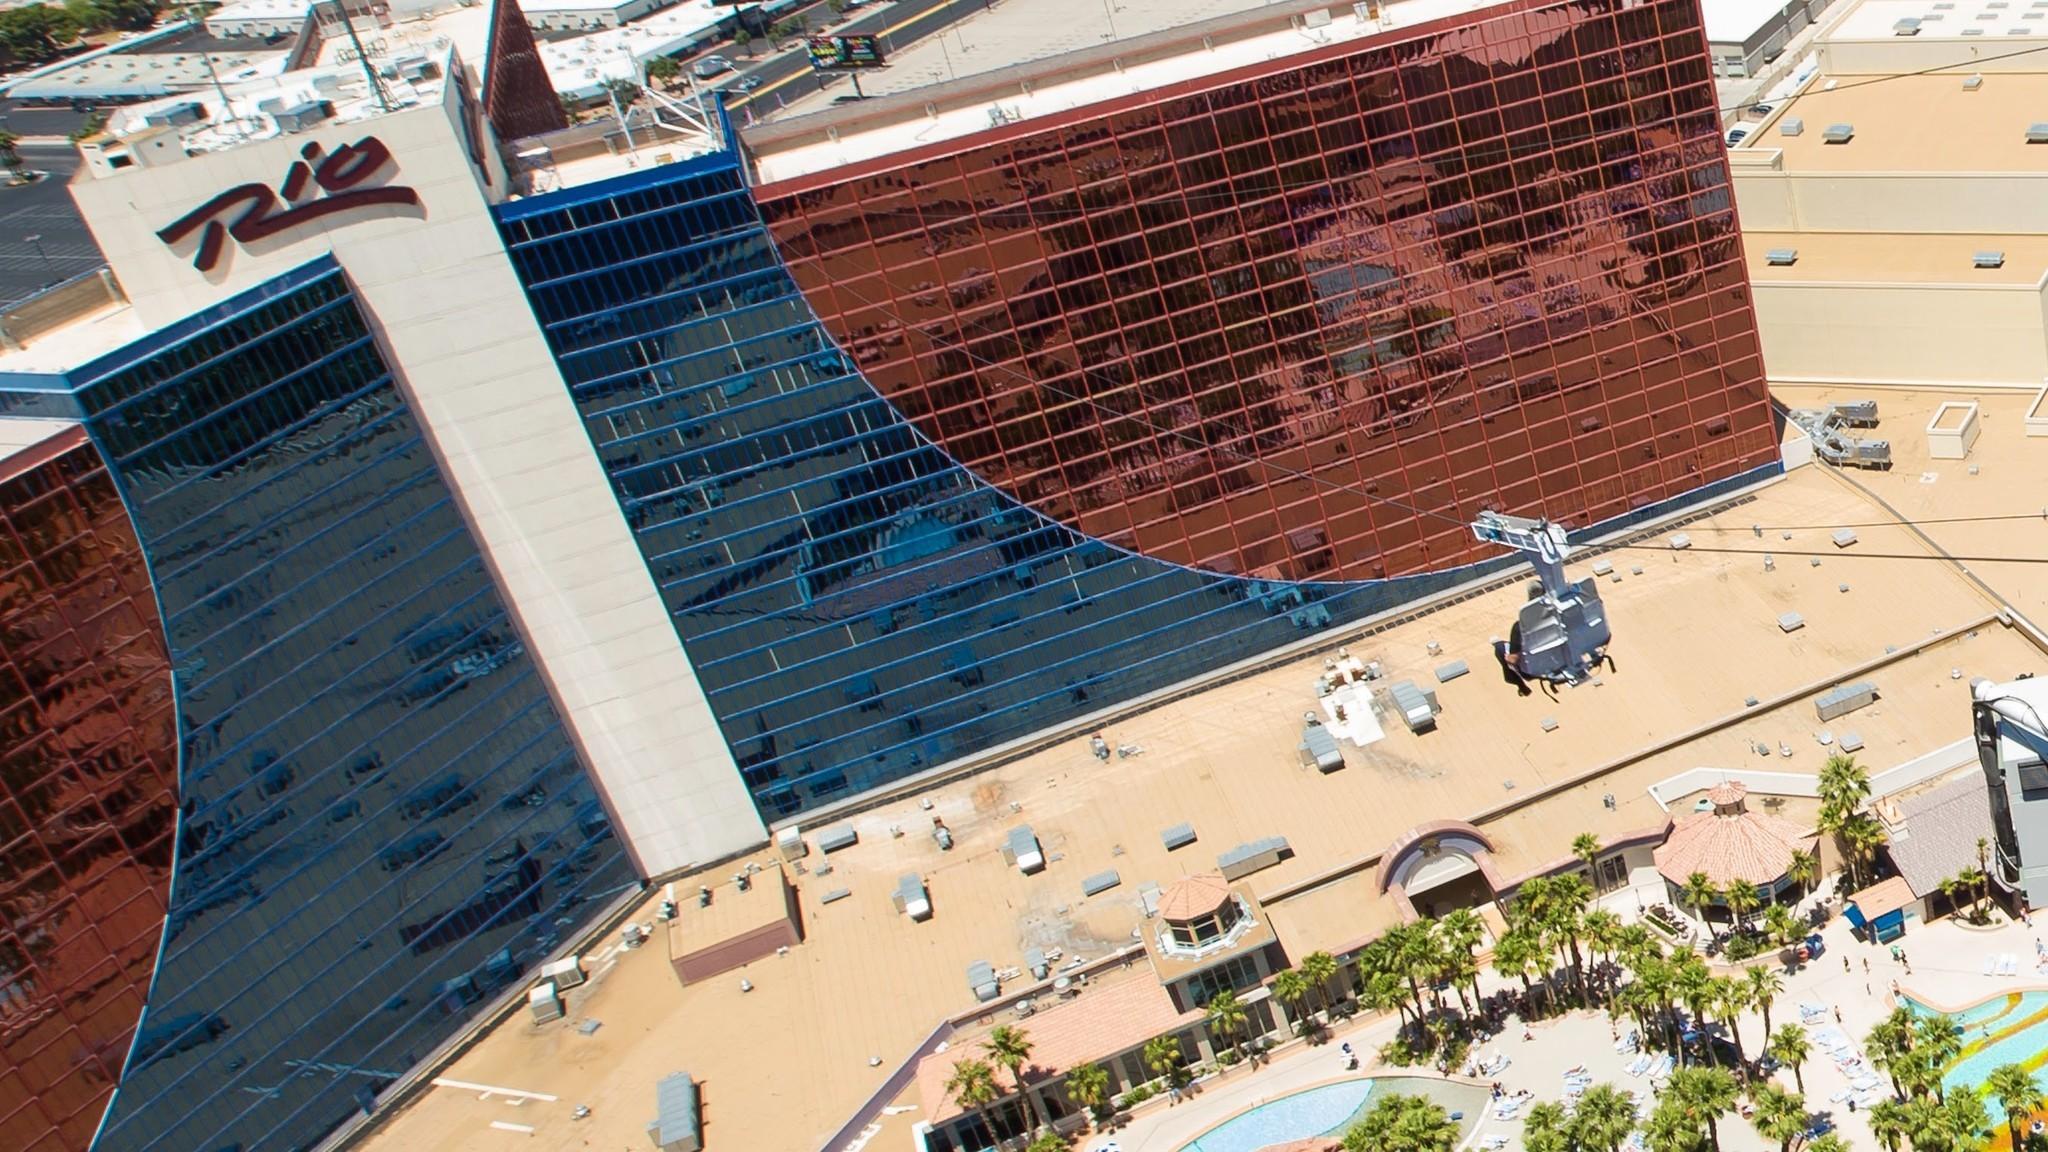 With the Strip resorts as a backdrop, the VooDoo Zipline sends thrill seekers on a ride between the Rio resort's two hotel towers.